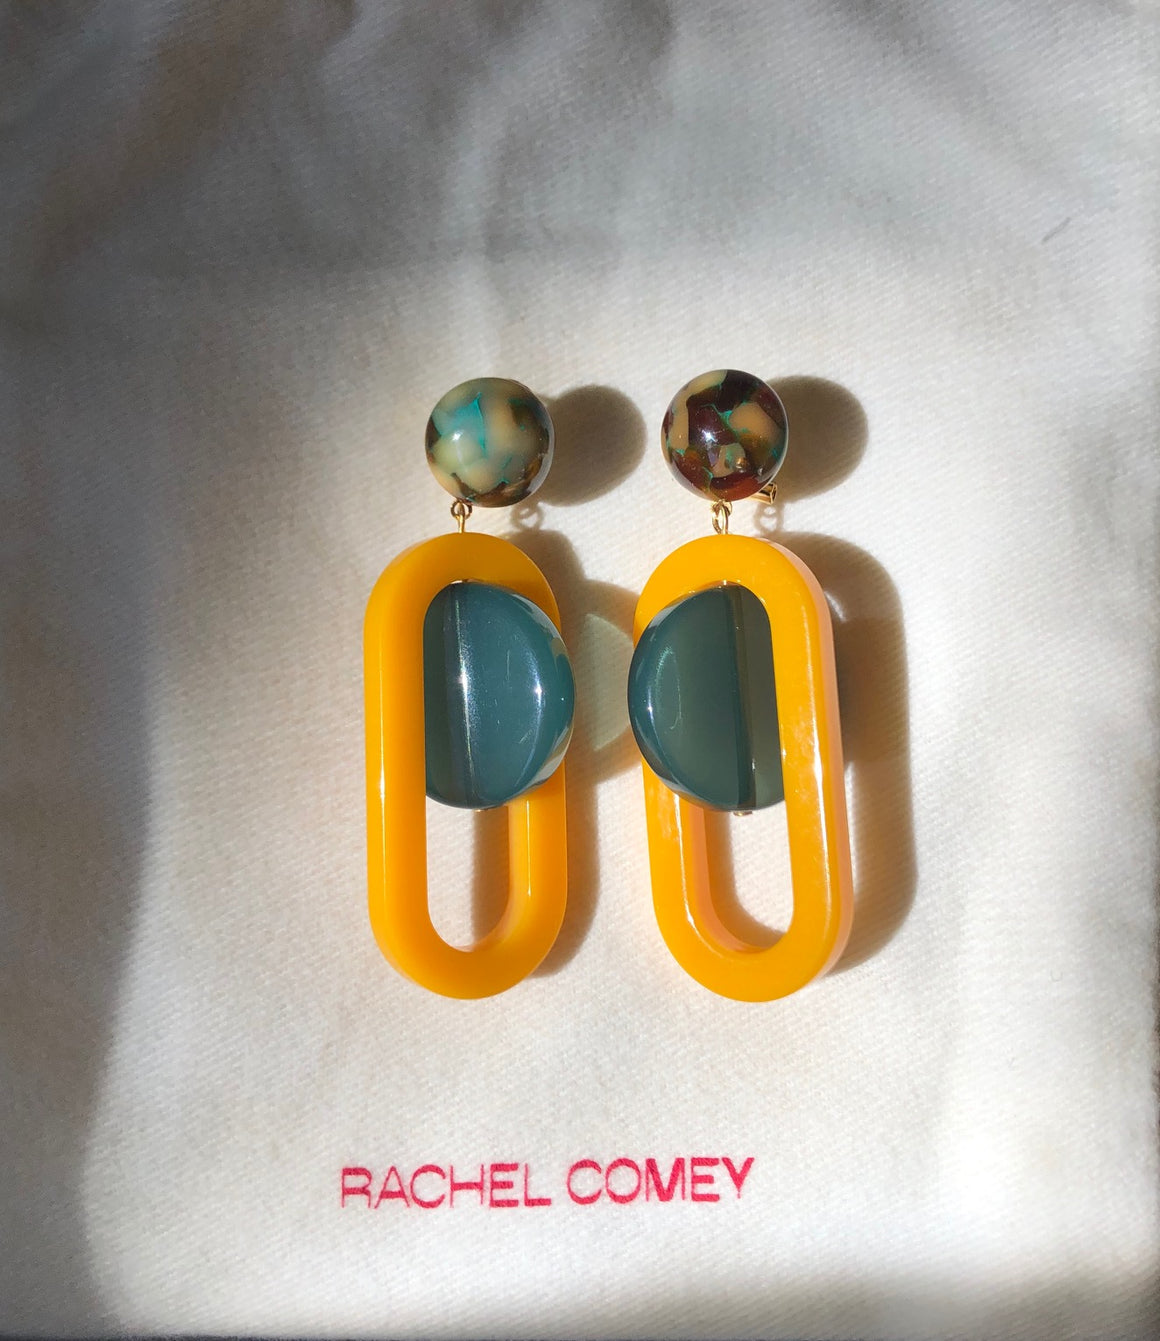 Rachel Comey Lohr Earrings green/mustard